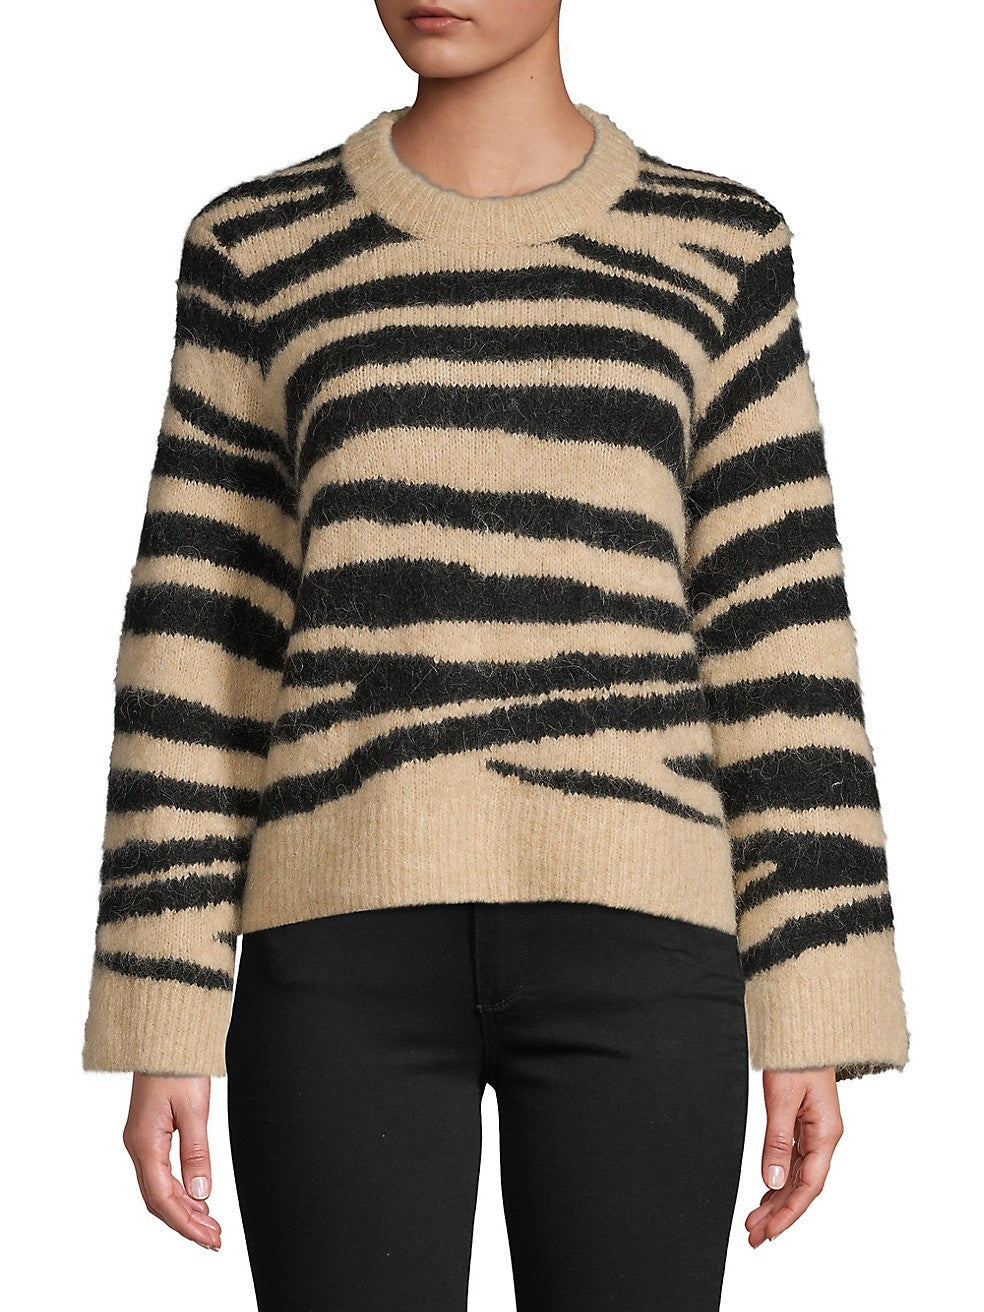 Tiger-Print Pullover Sweater